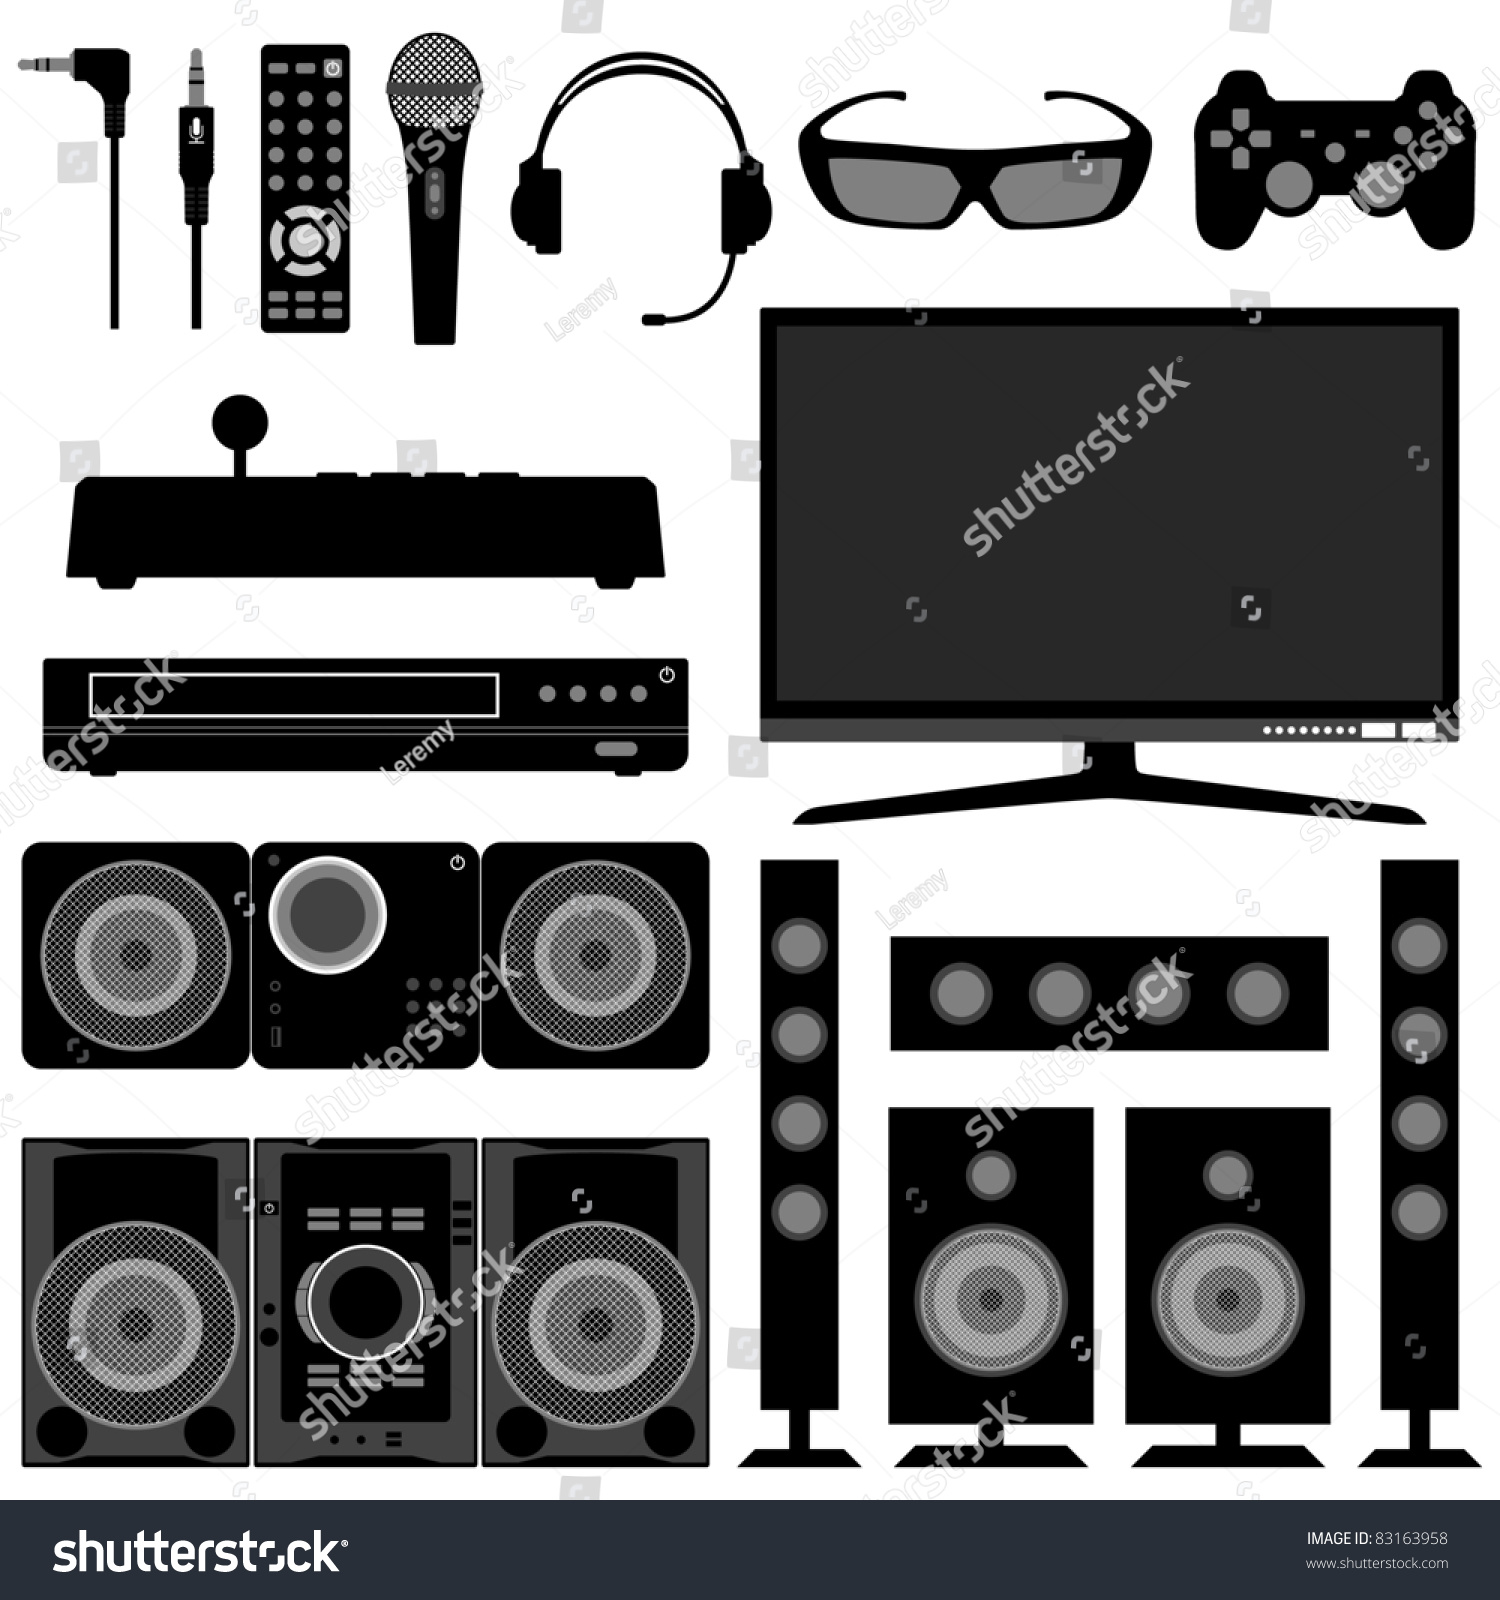 living room appliances. Audio Visual System Electronic Electrical Appliances for Living Room Stock Vector